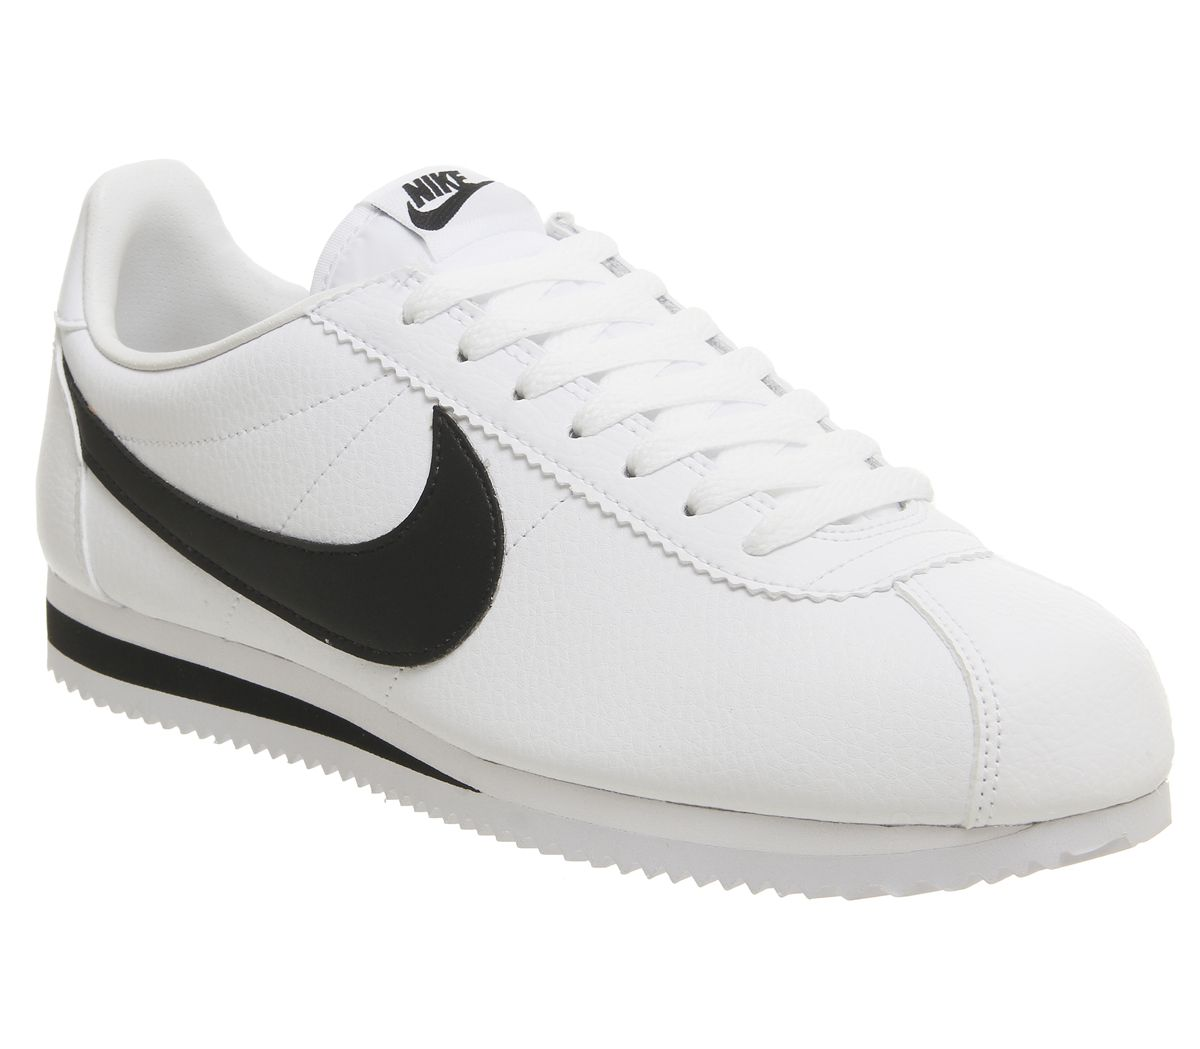 new arrival 98f14 3ba28 Nike Classic Cortez Og White Black Leather - His trainers